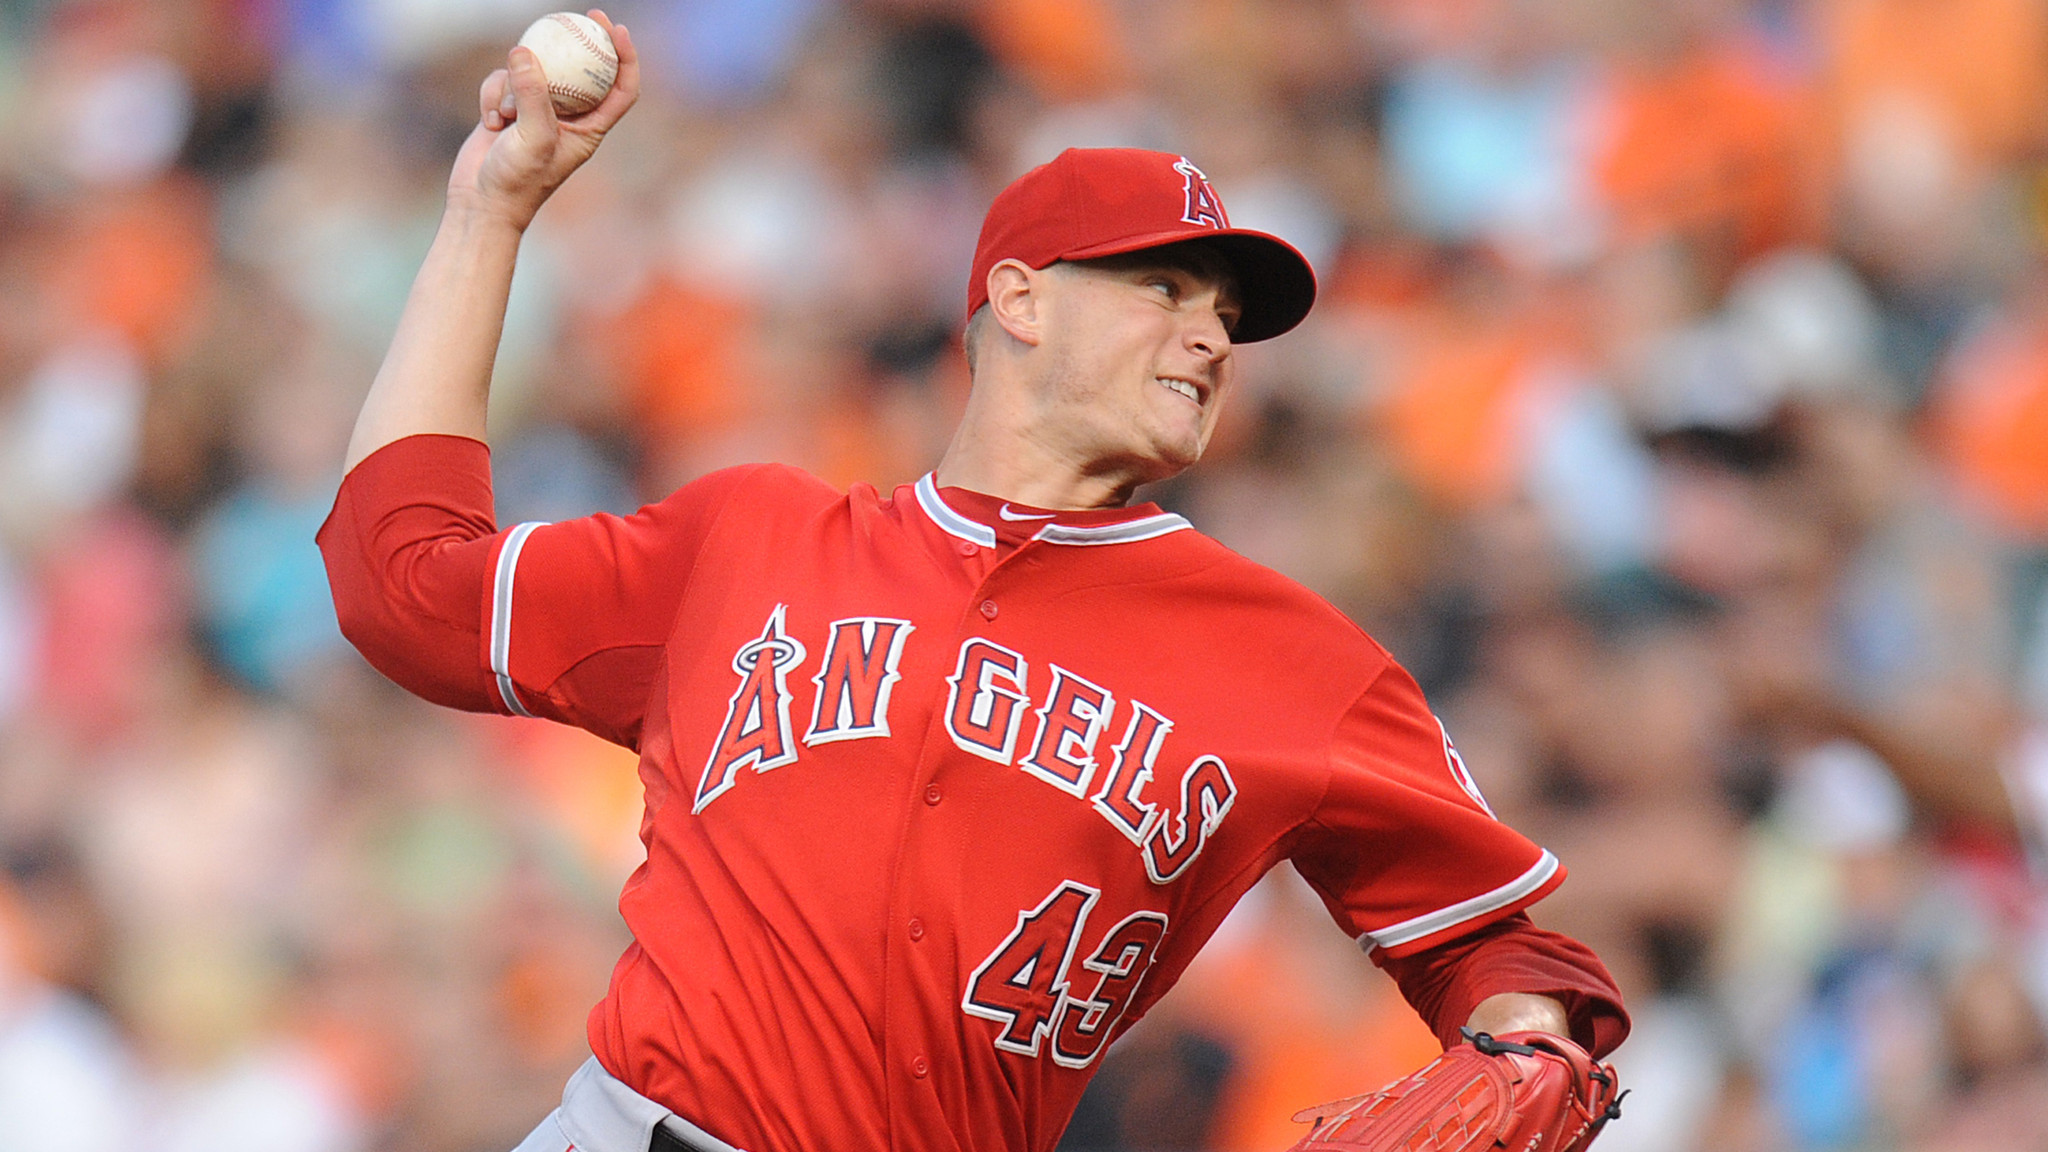 Garrett Richards has second bad outing in a row for Angels